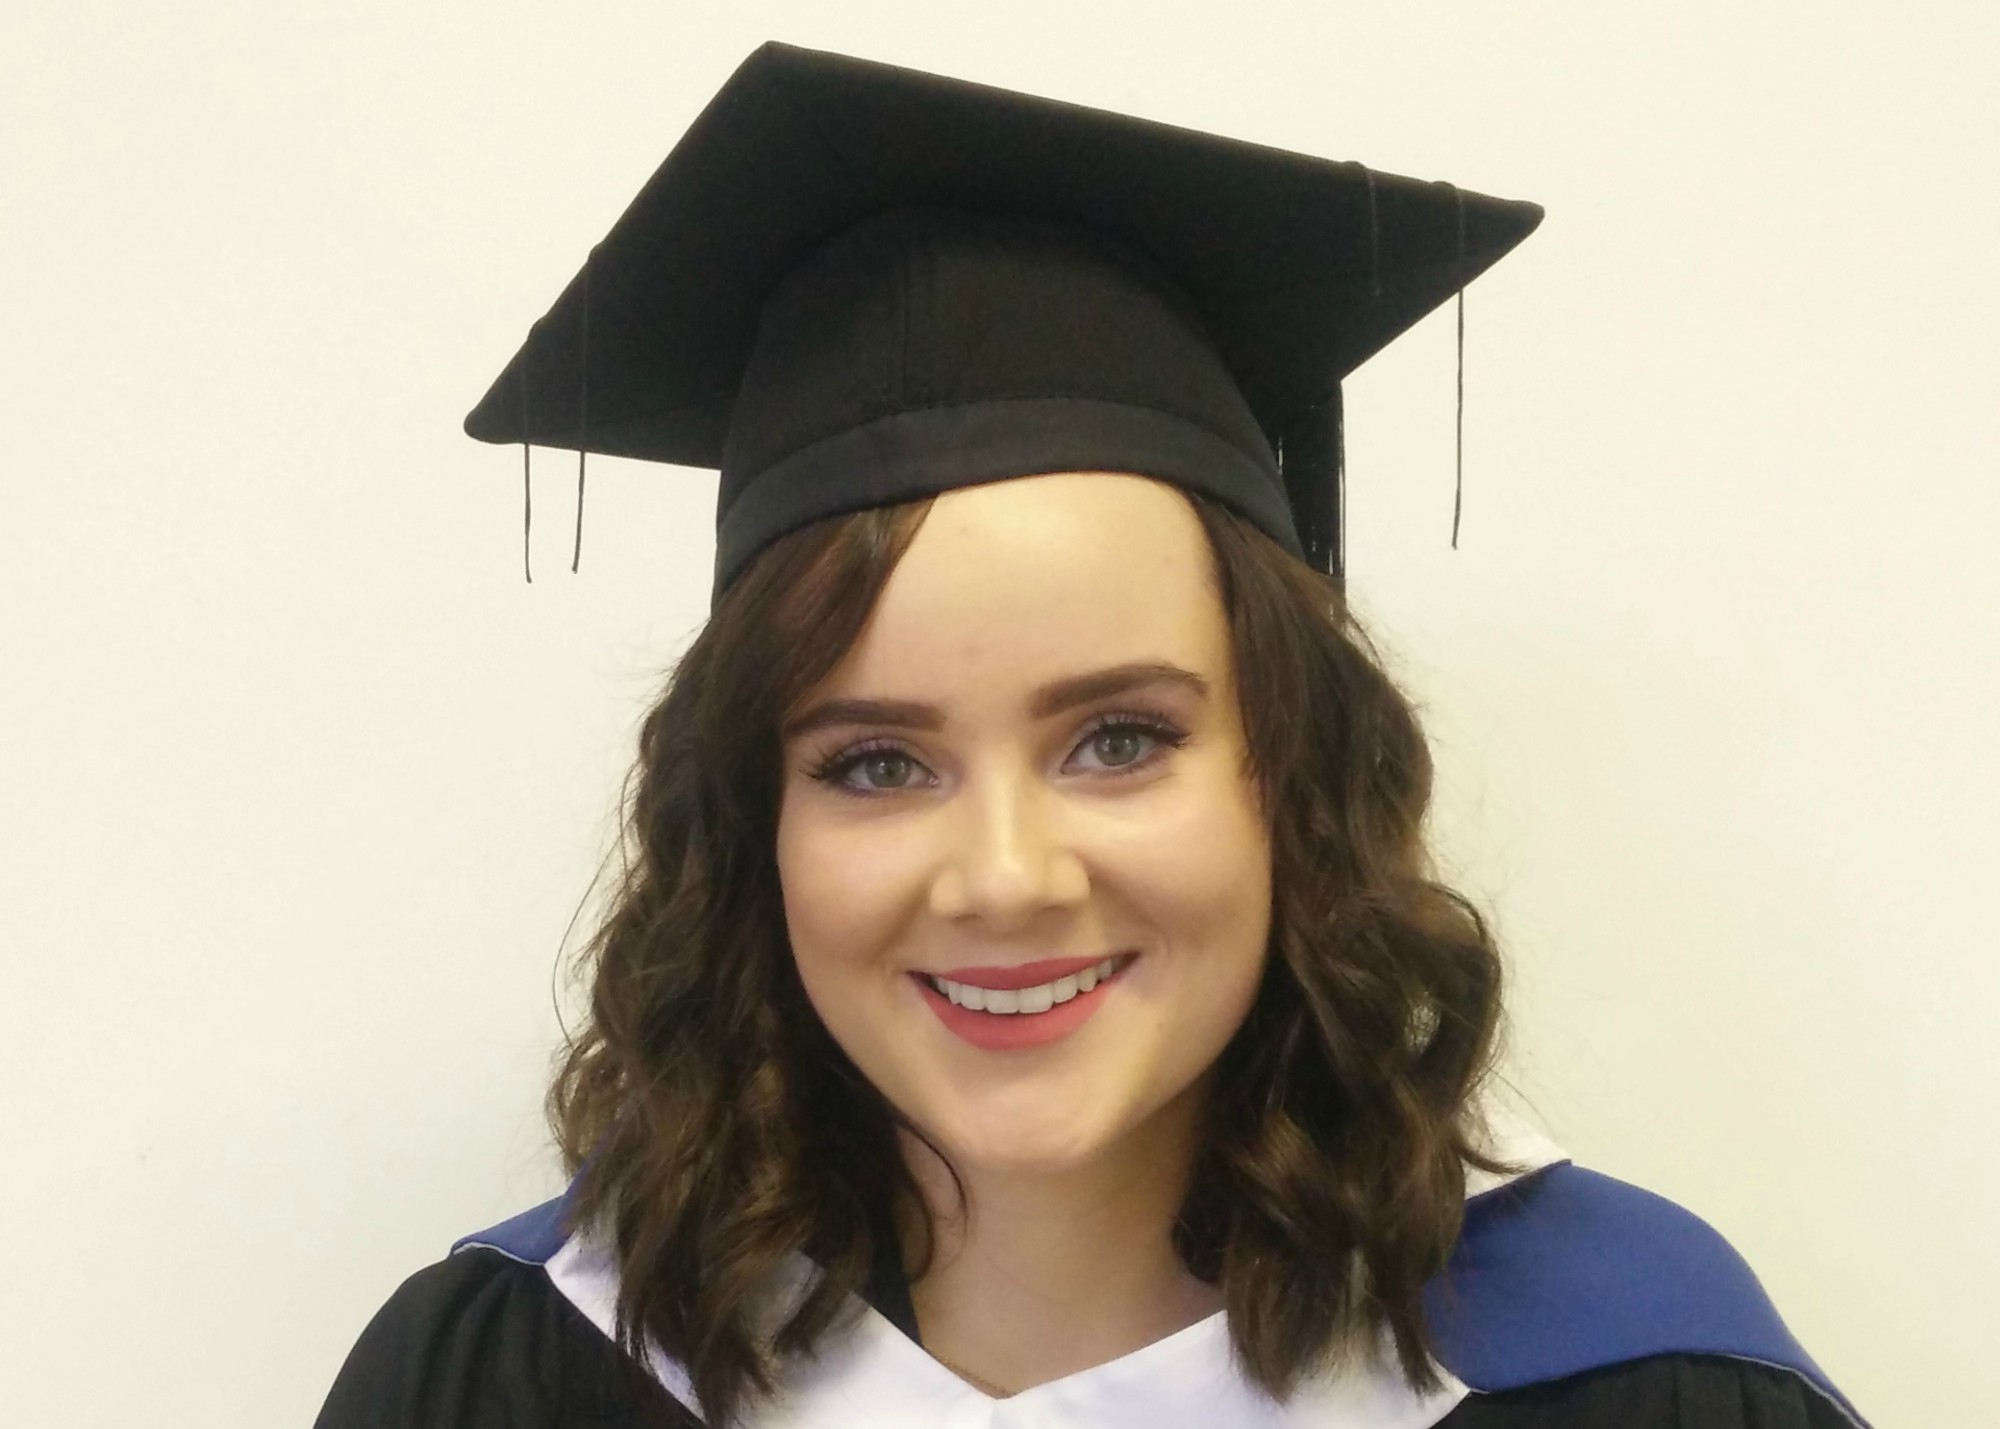 Pictured is Emer Eleanor, Walsh Rutherford who started out with the BSc in Multimedia Applications Development before progressing on to the BSc (Hons) in Creative Computing